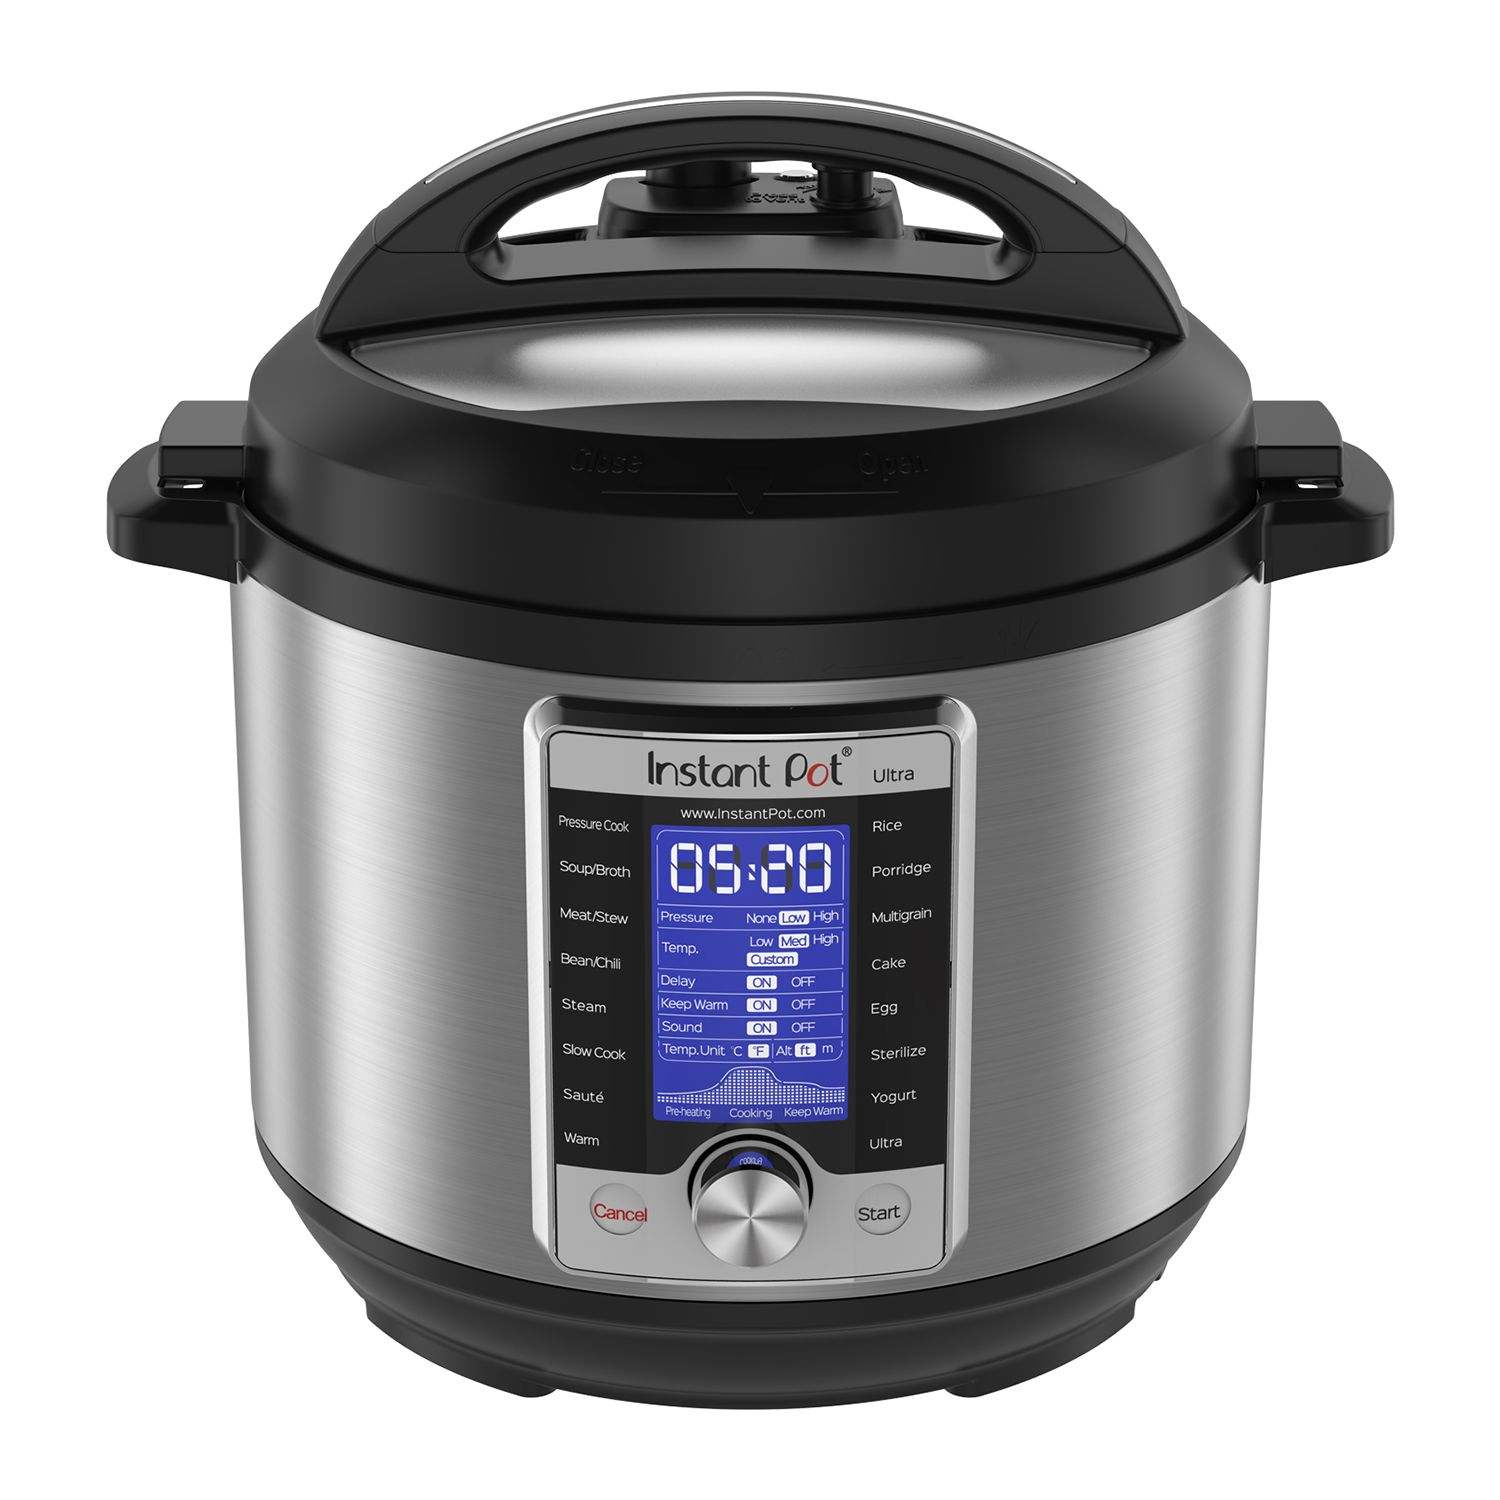 Instant Pot Ultra 10in1 6qt Programmable Pressure Cooker